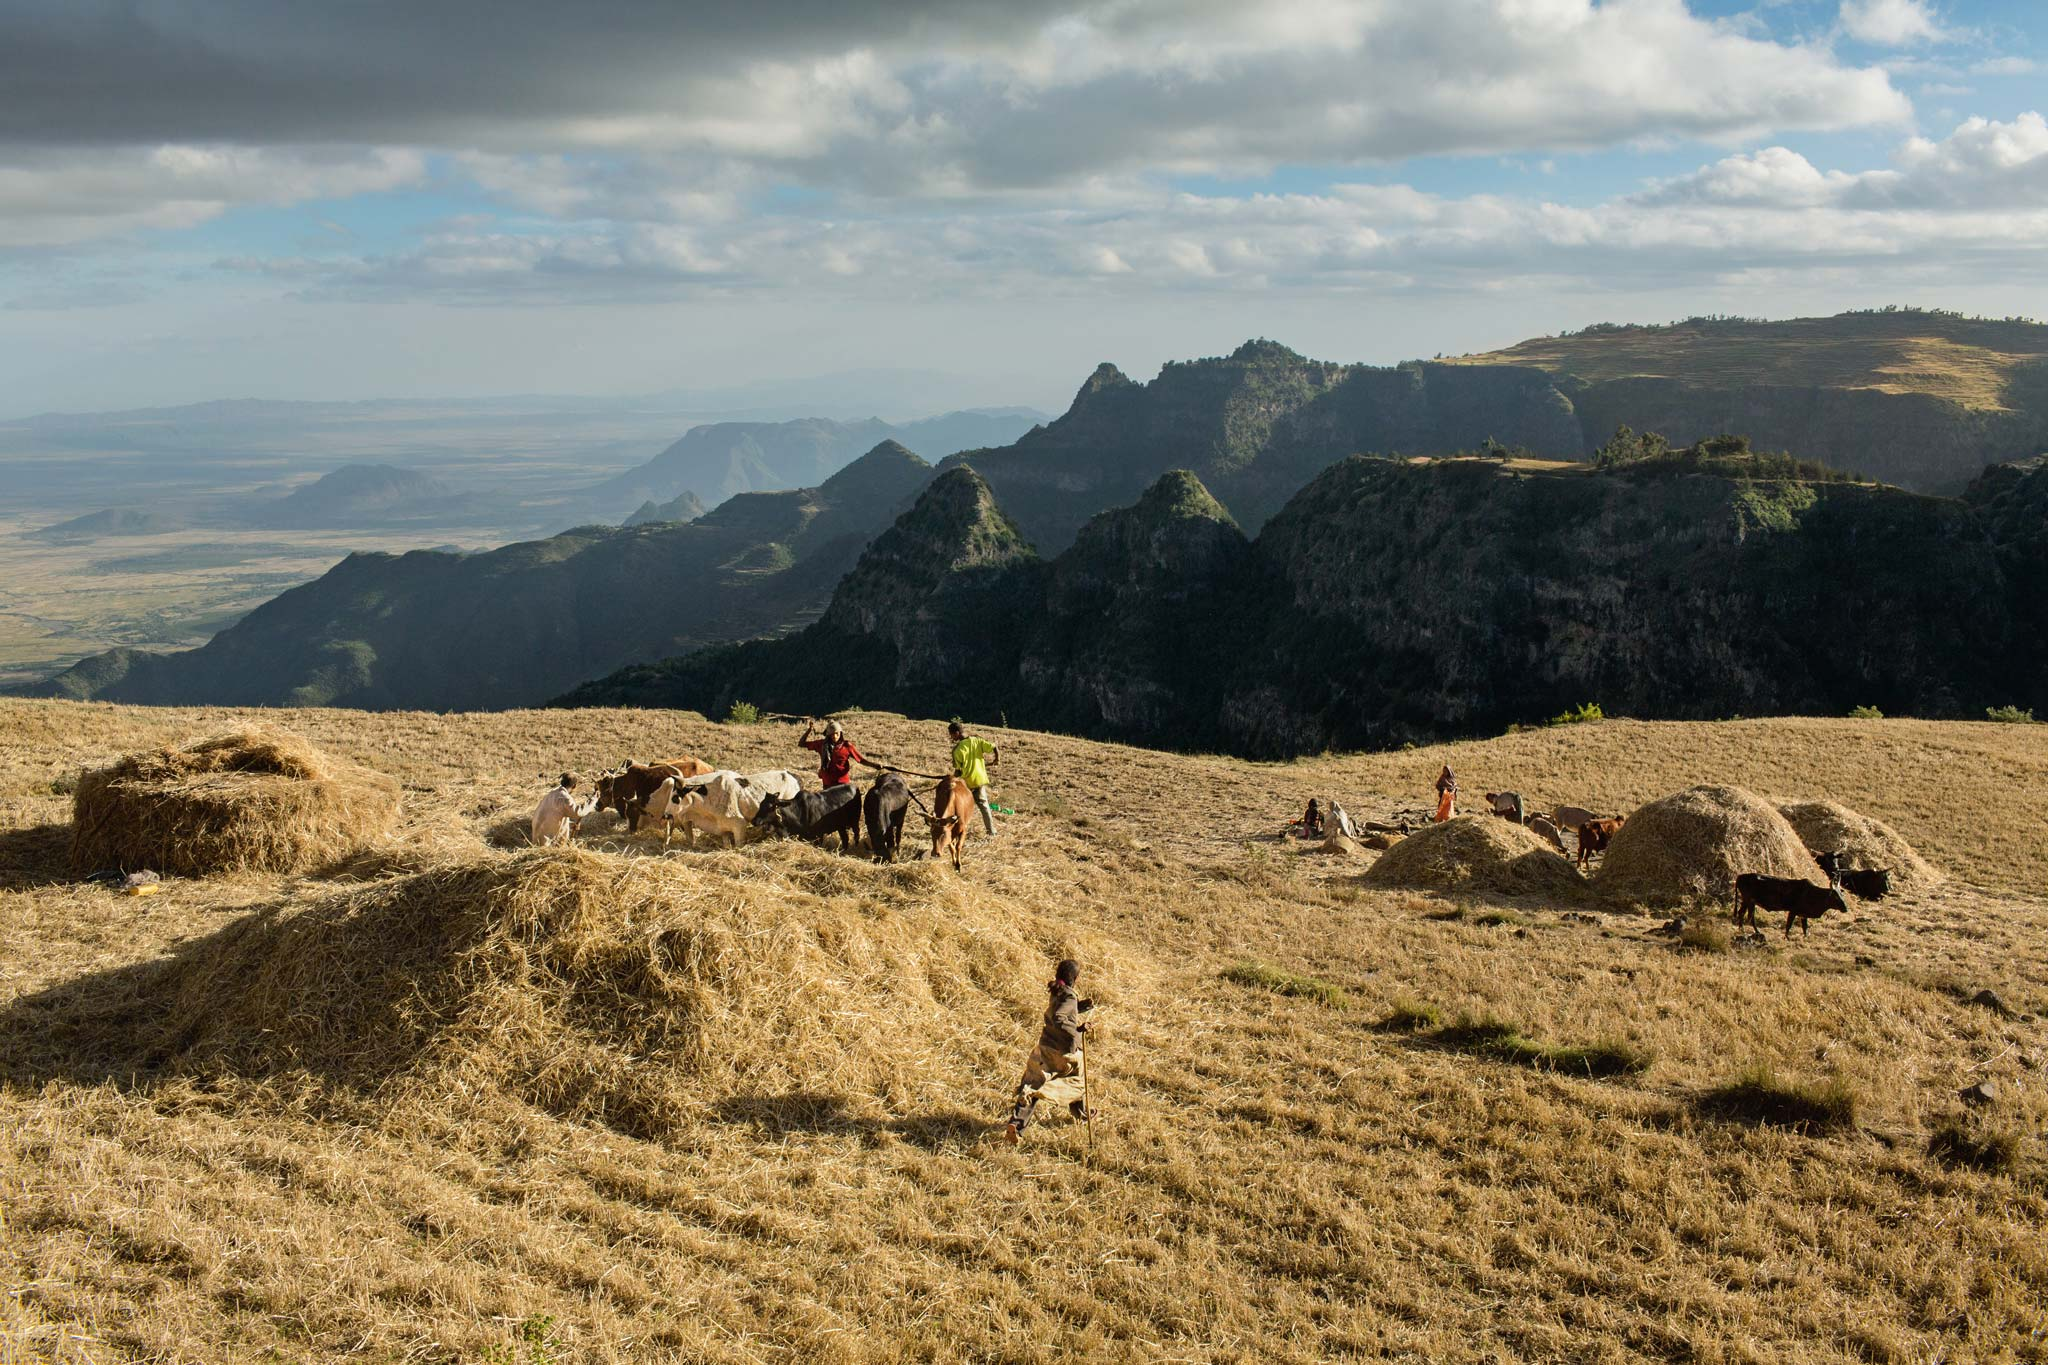 Picture of a wheat harvest in Ethiopia